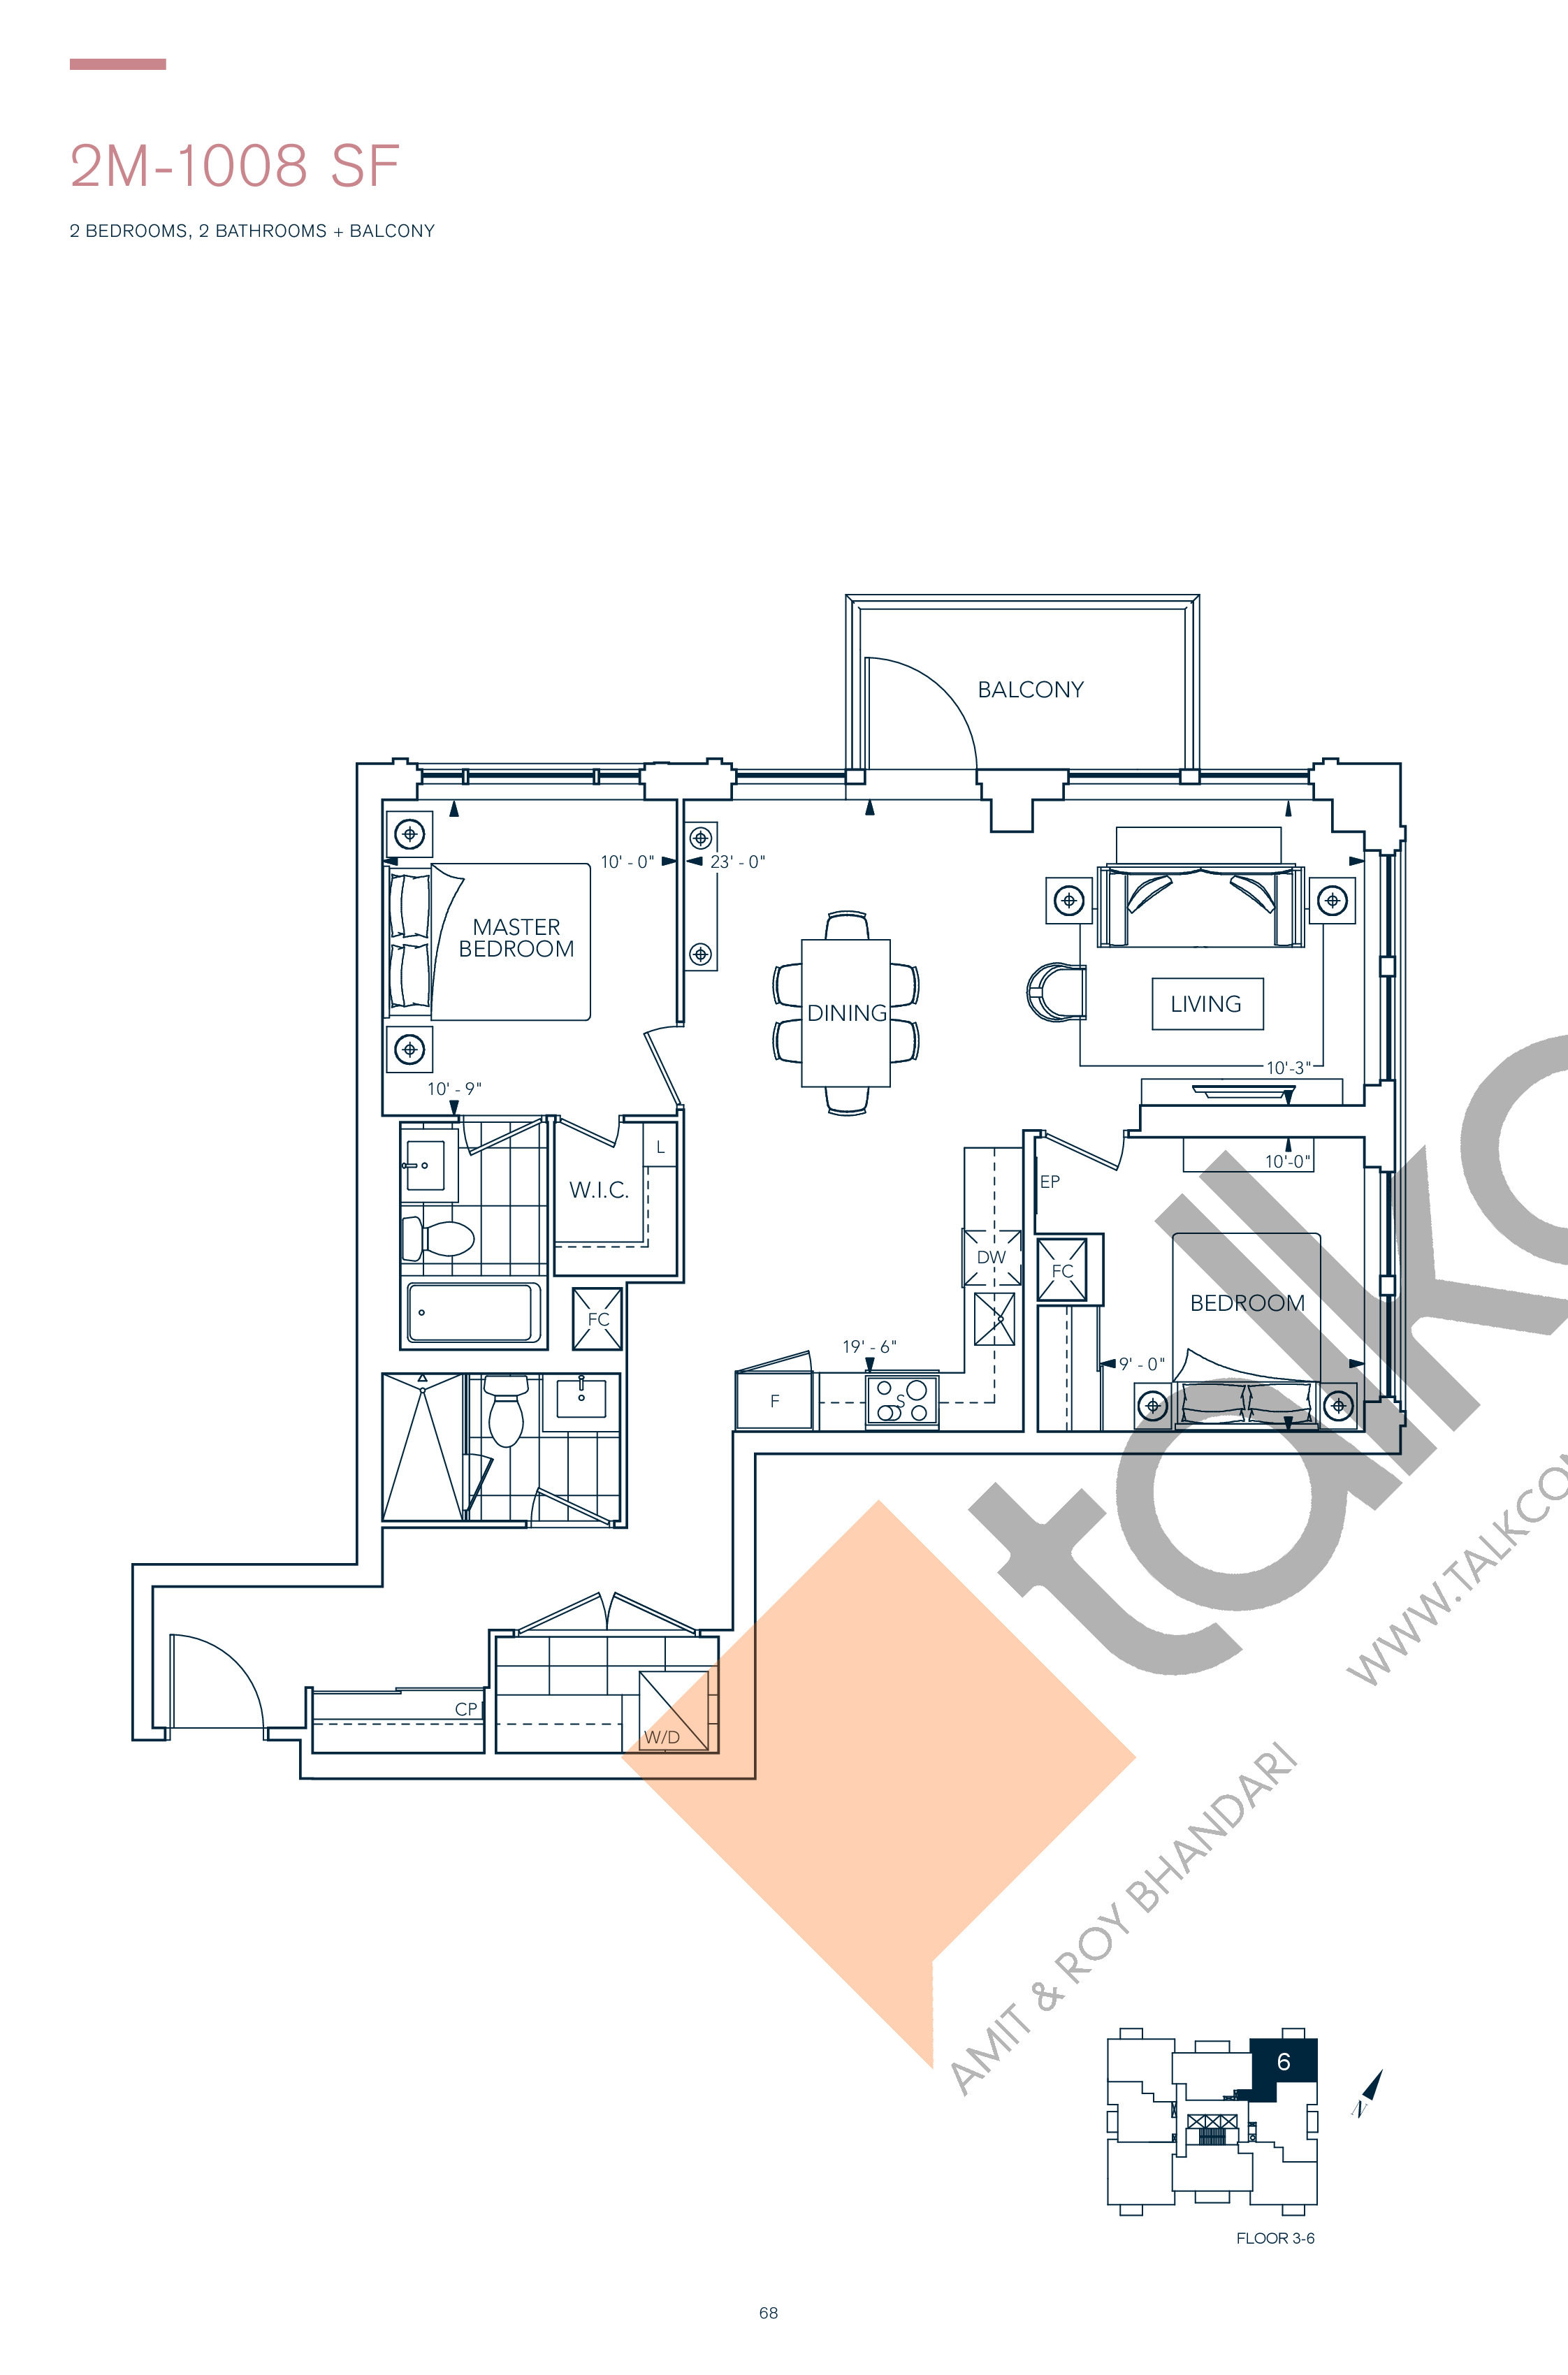 2M-1008 SF Floor Plan at Evermore Condos - 1008 sq.ft